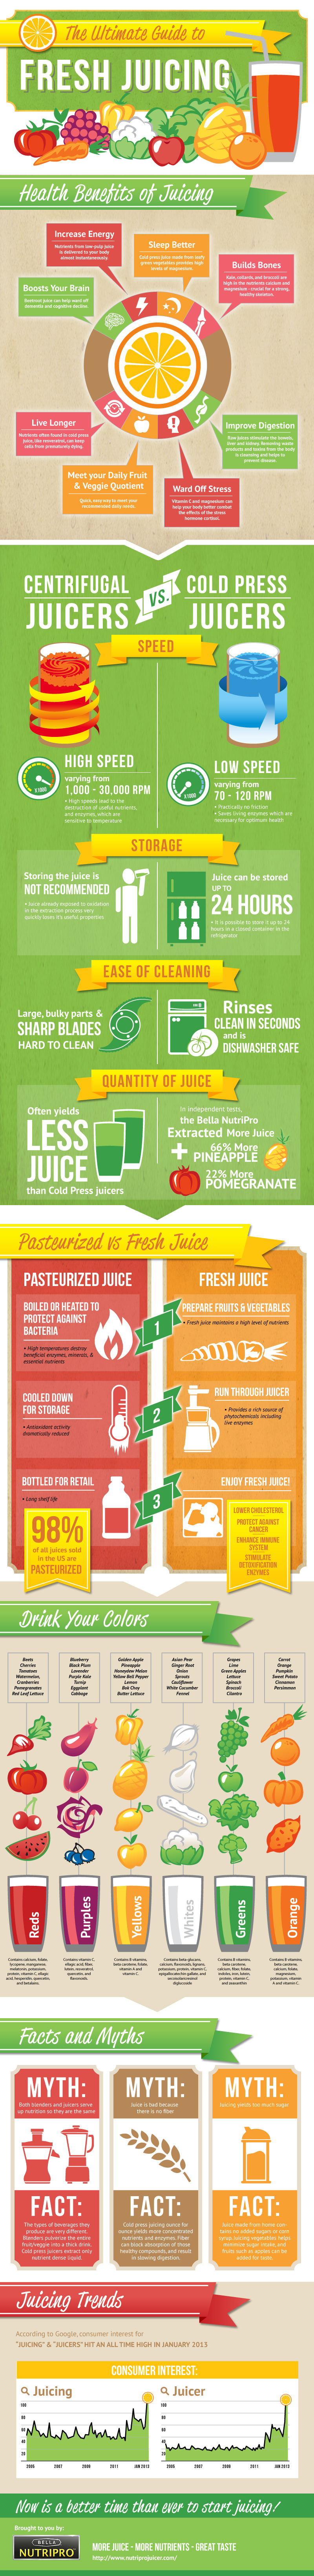 Ultimate Guide to Juicing